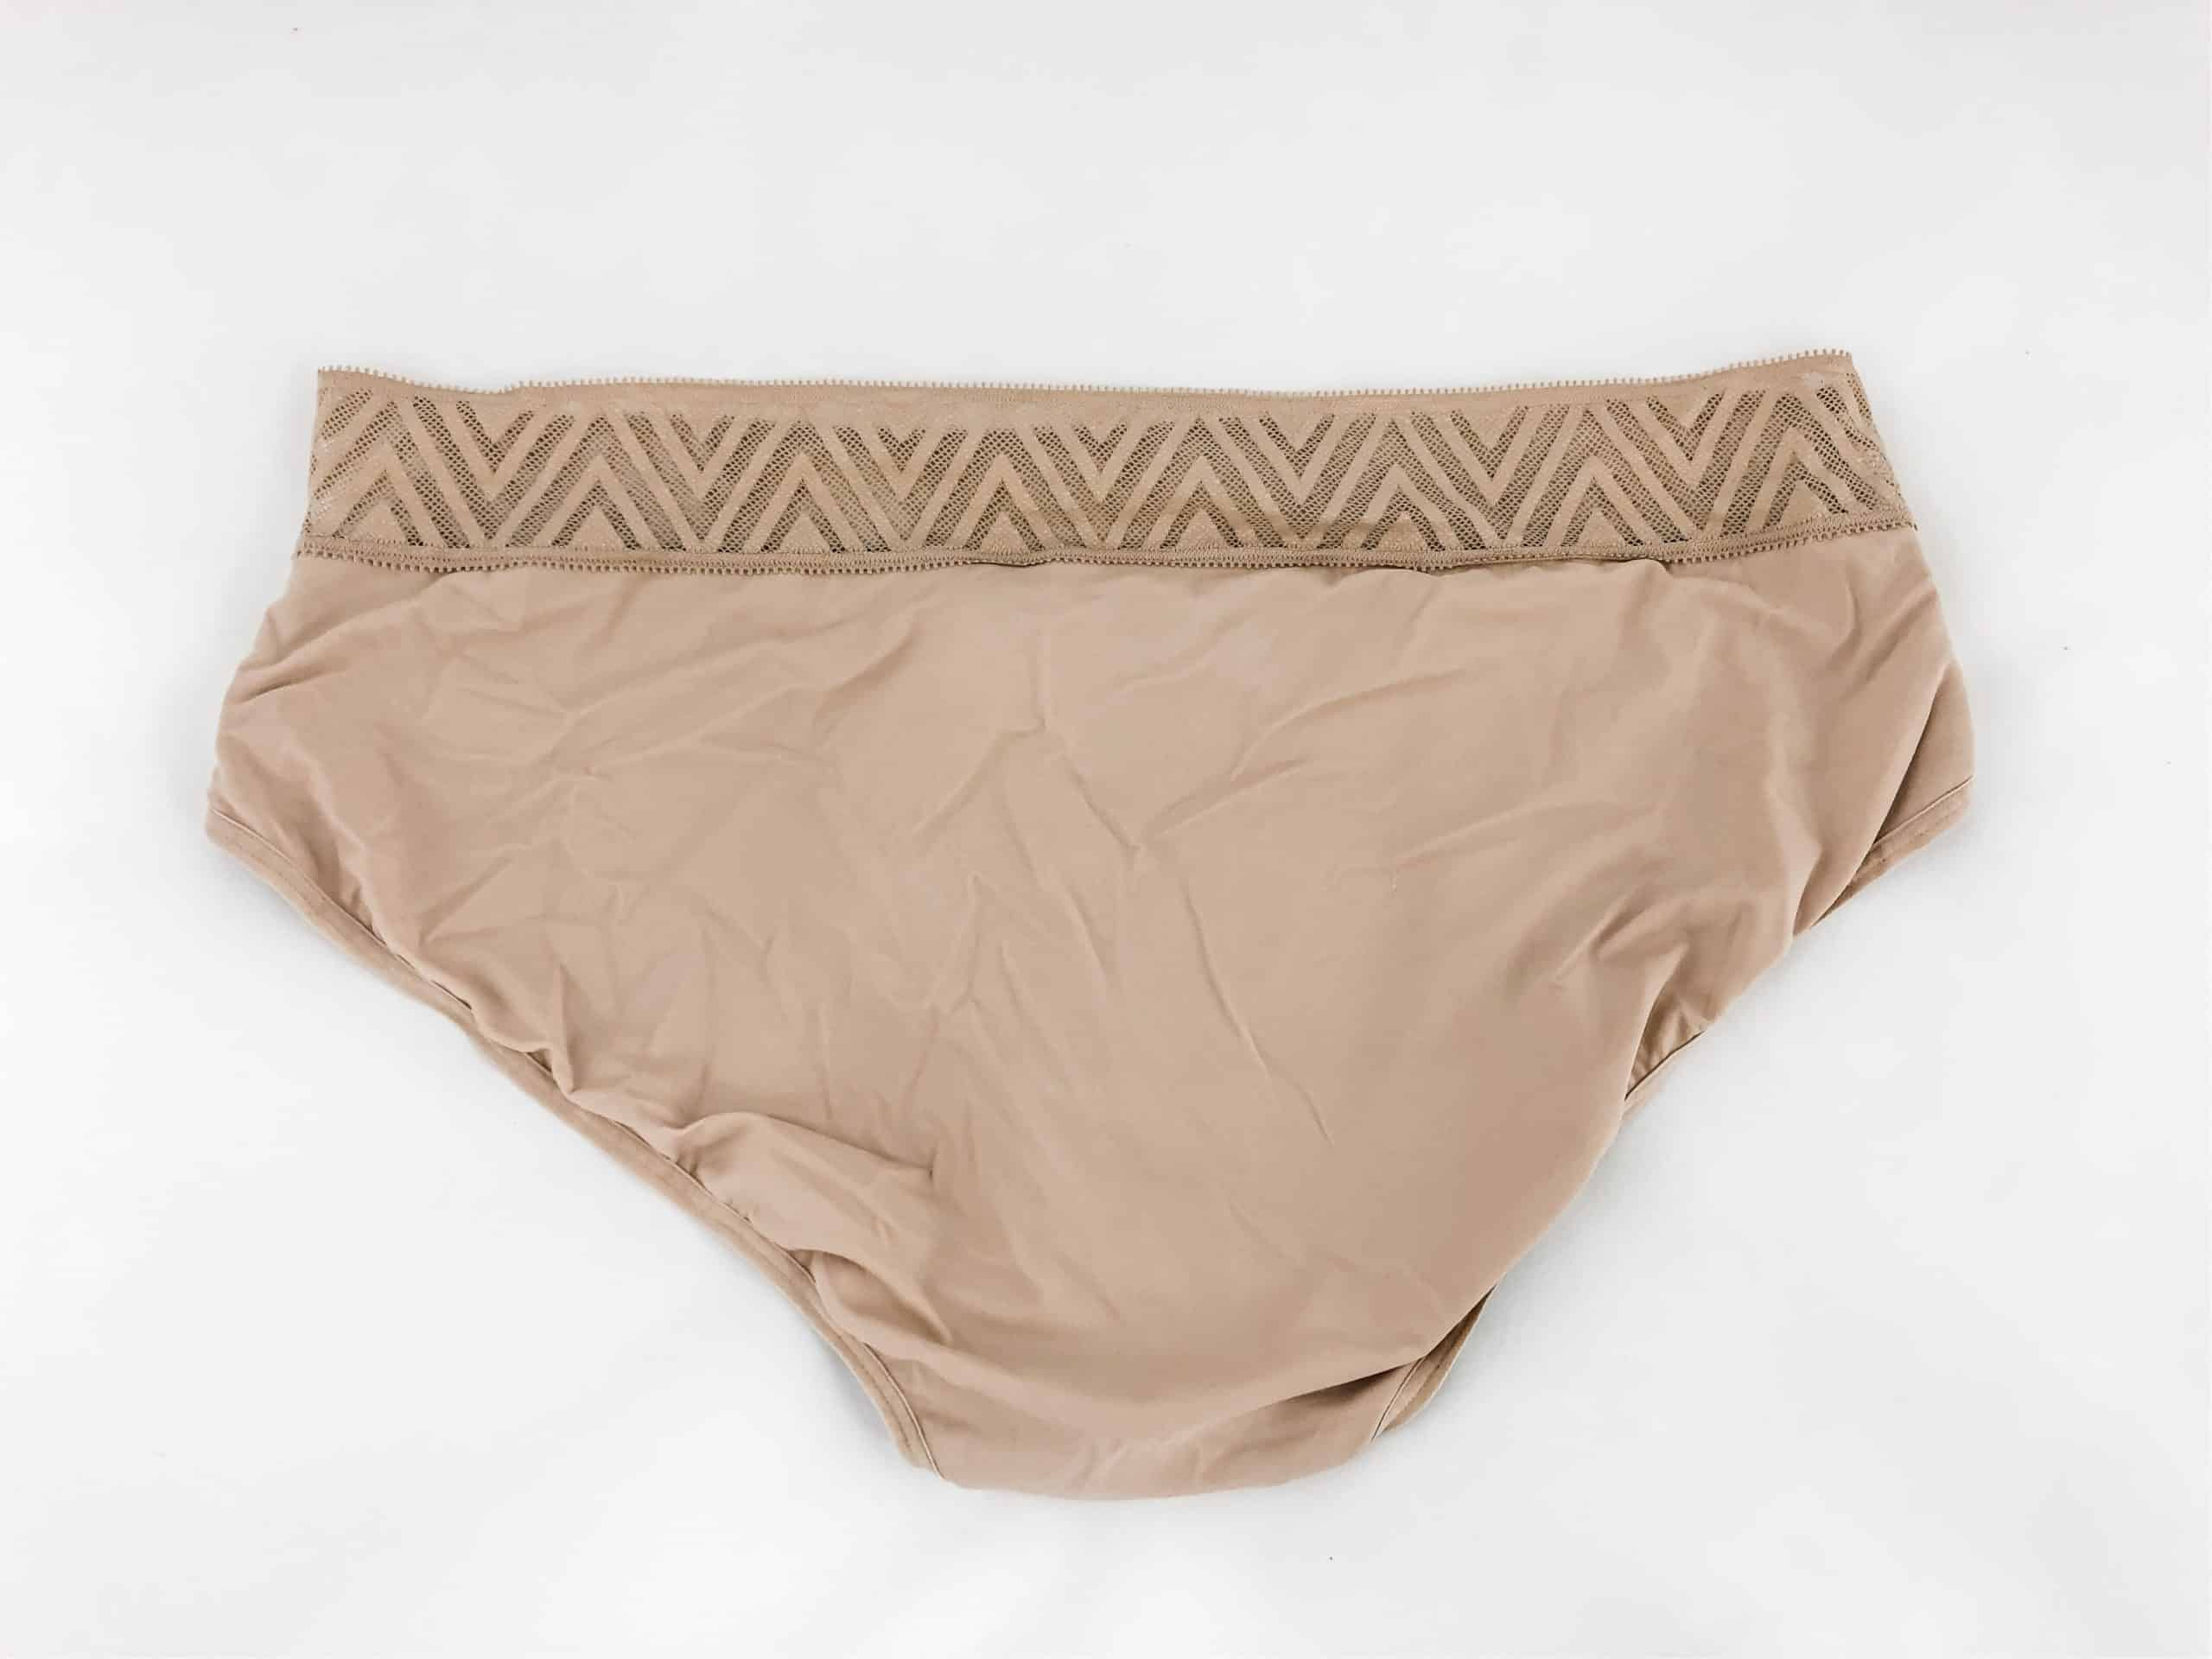 Thinx Period Panties Test Positive for Toxic PFAS back of panties